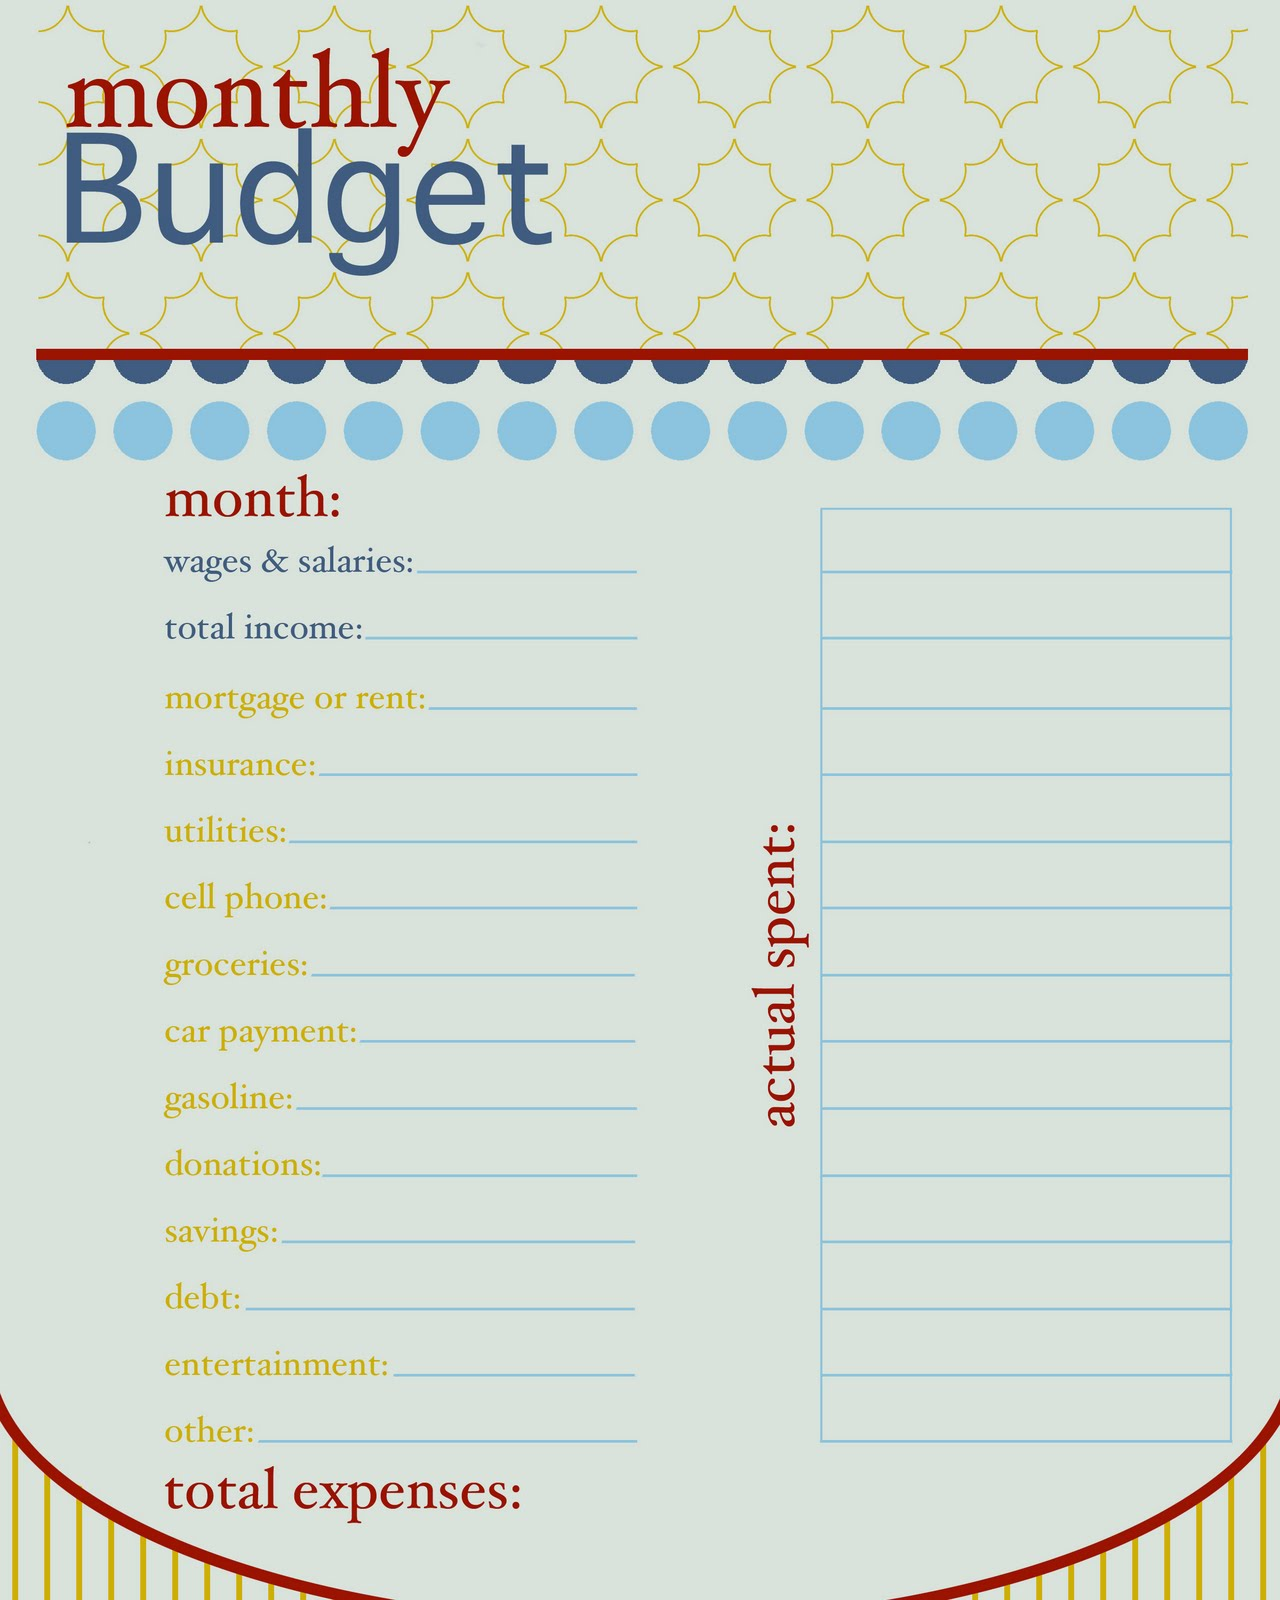 Worksheets Budgeting Worksheets Free monthly budget planner template printable